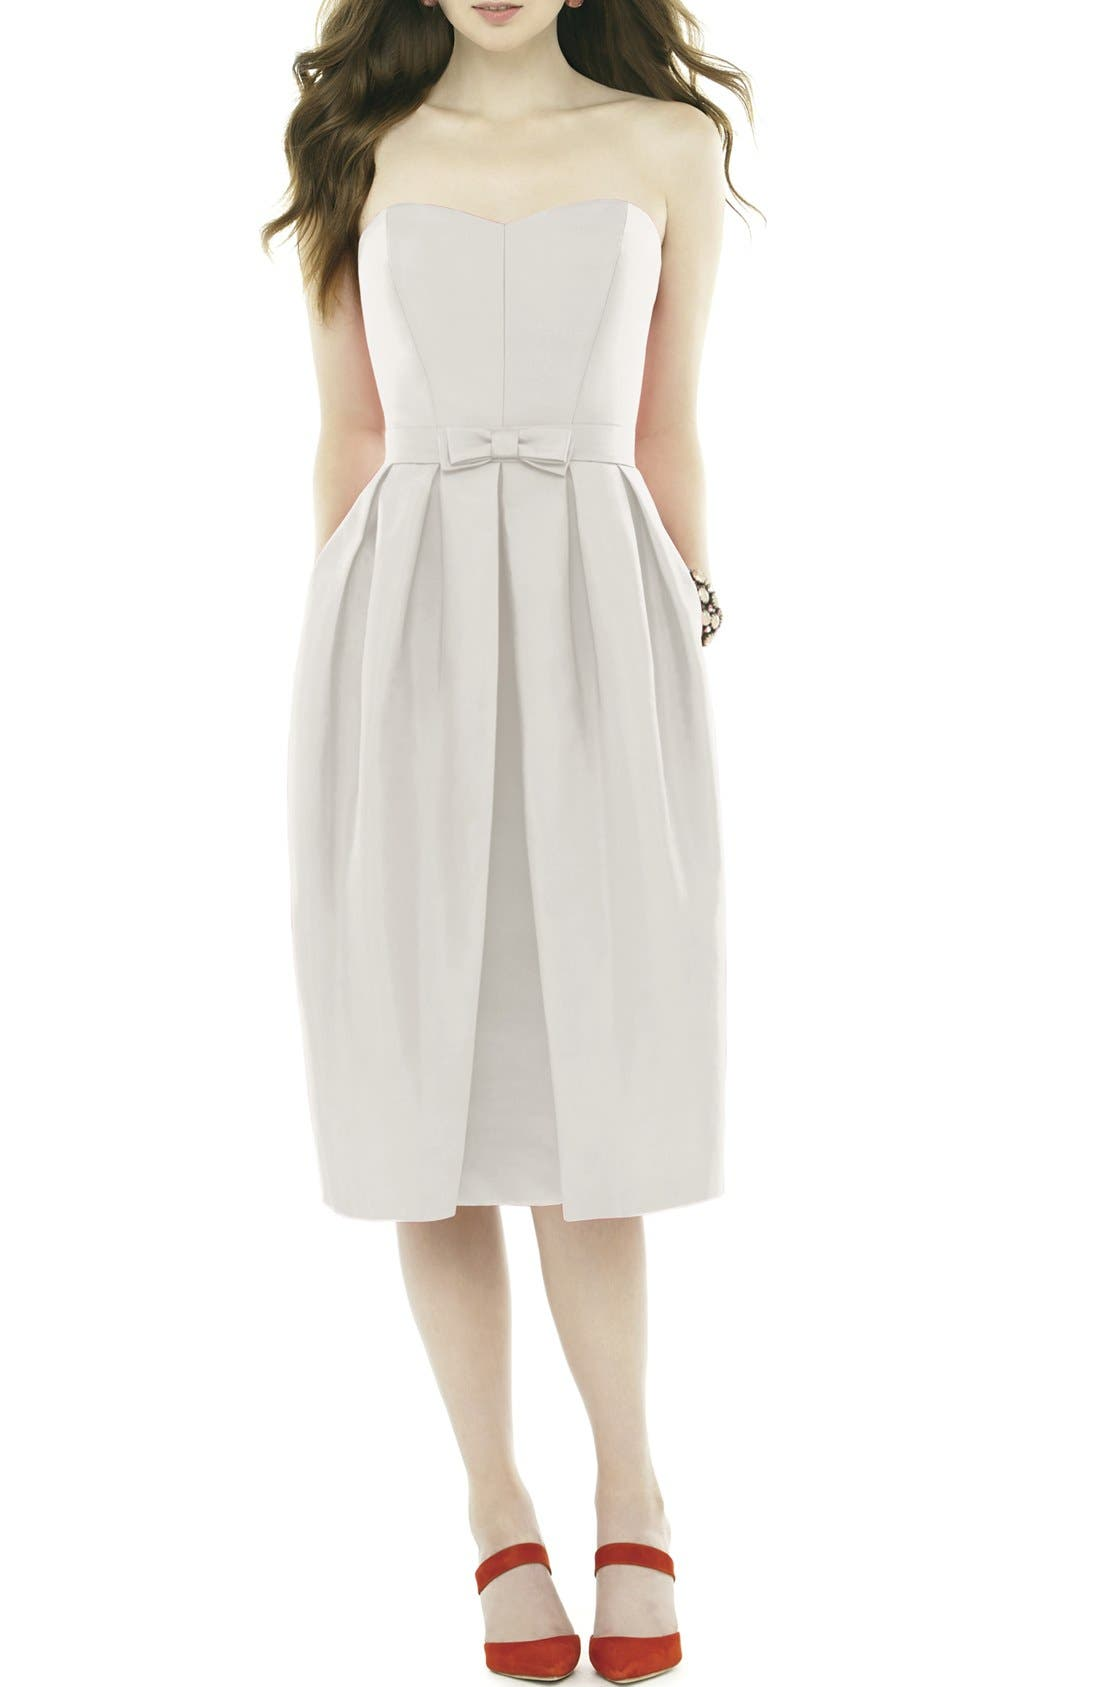 Alfred Sung Strapless Peau de Soie Midi Dress with Bow Belt